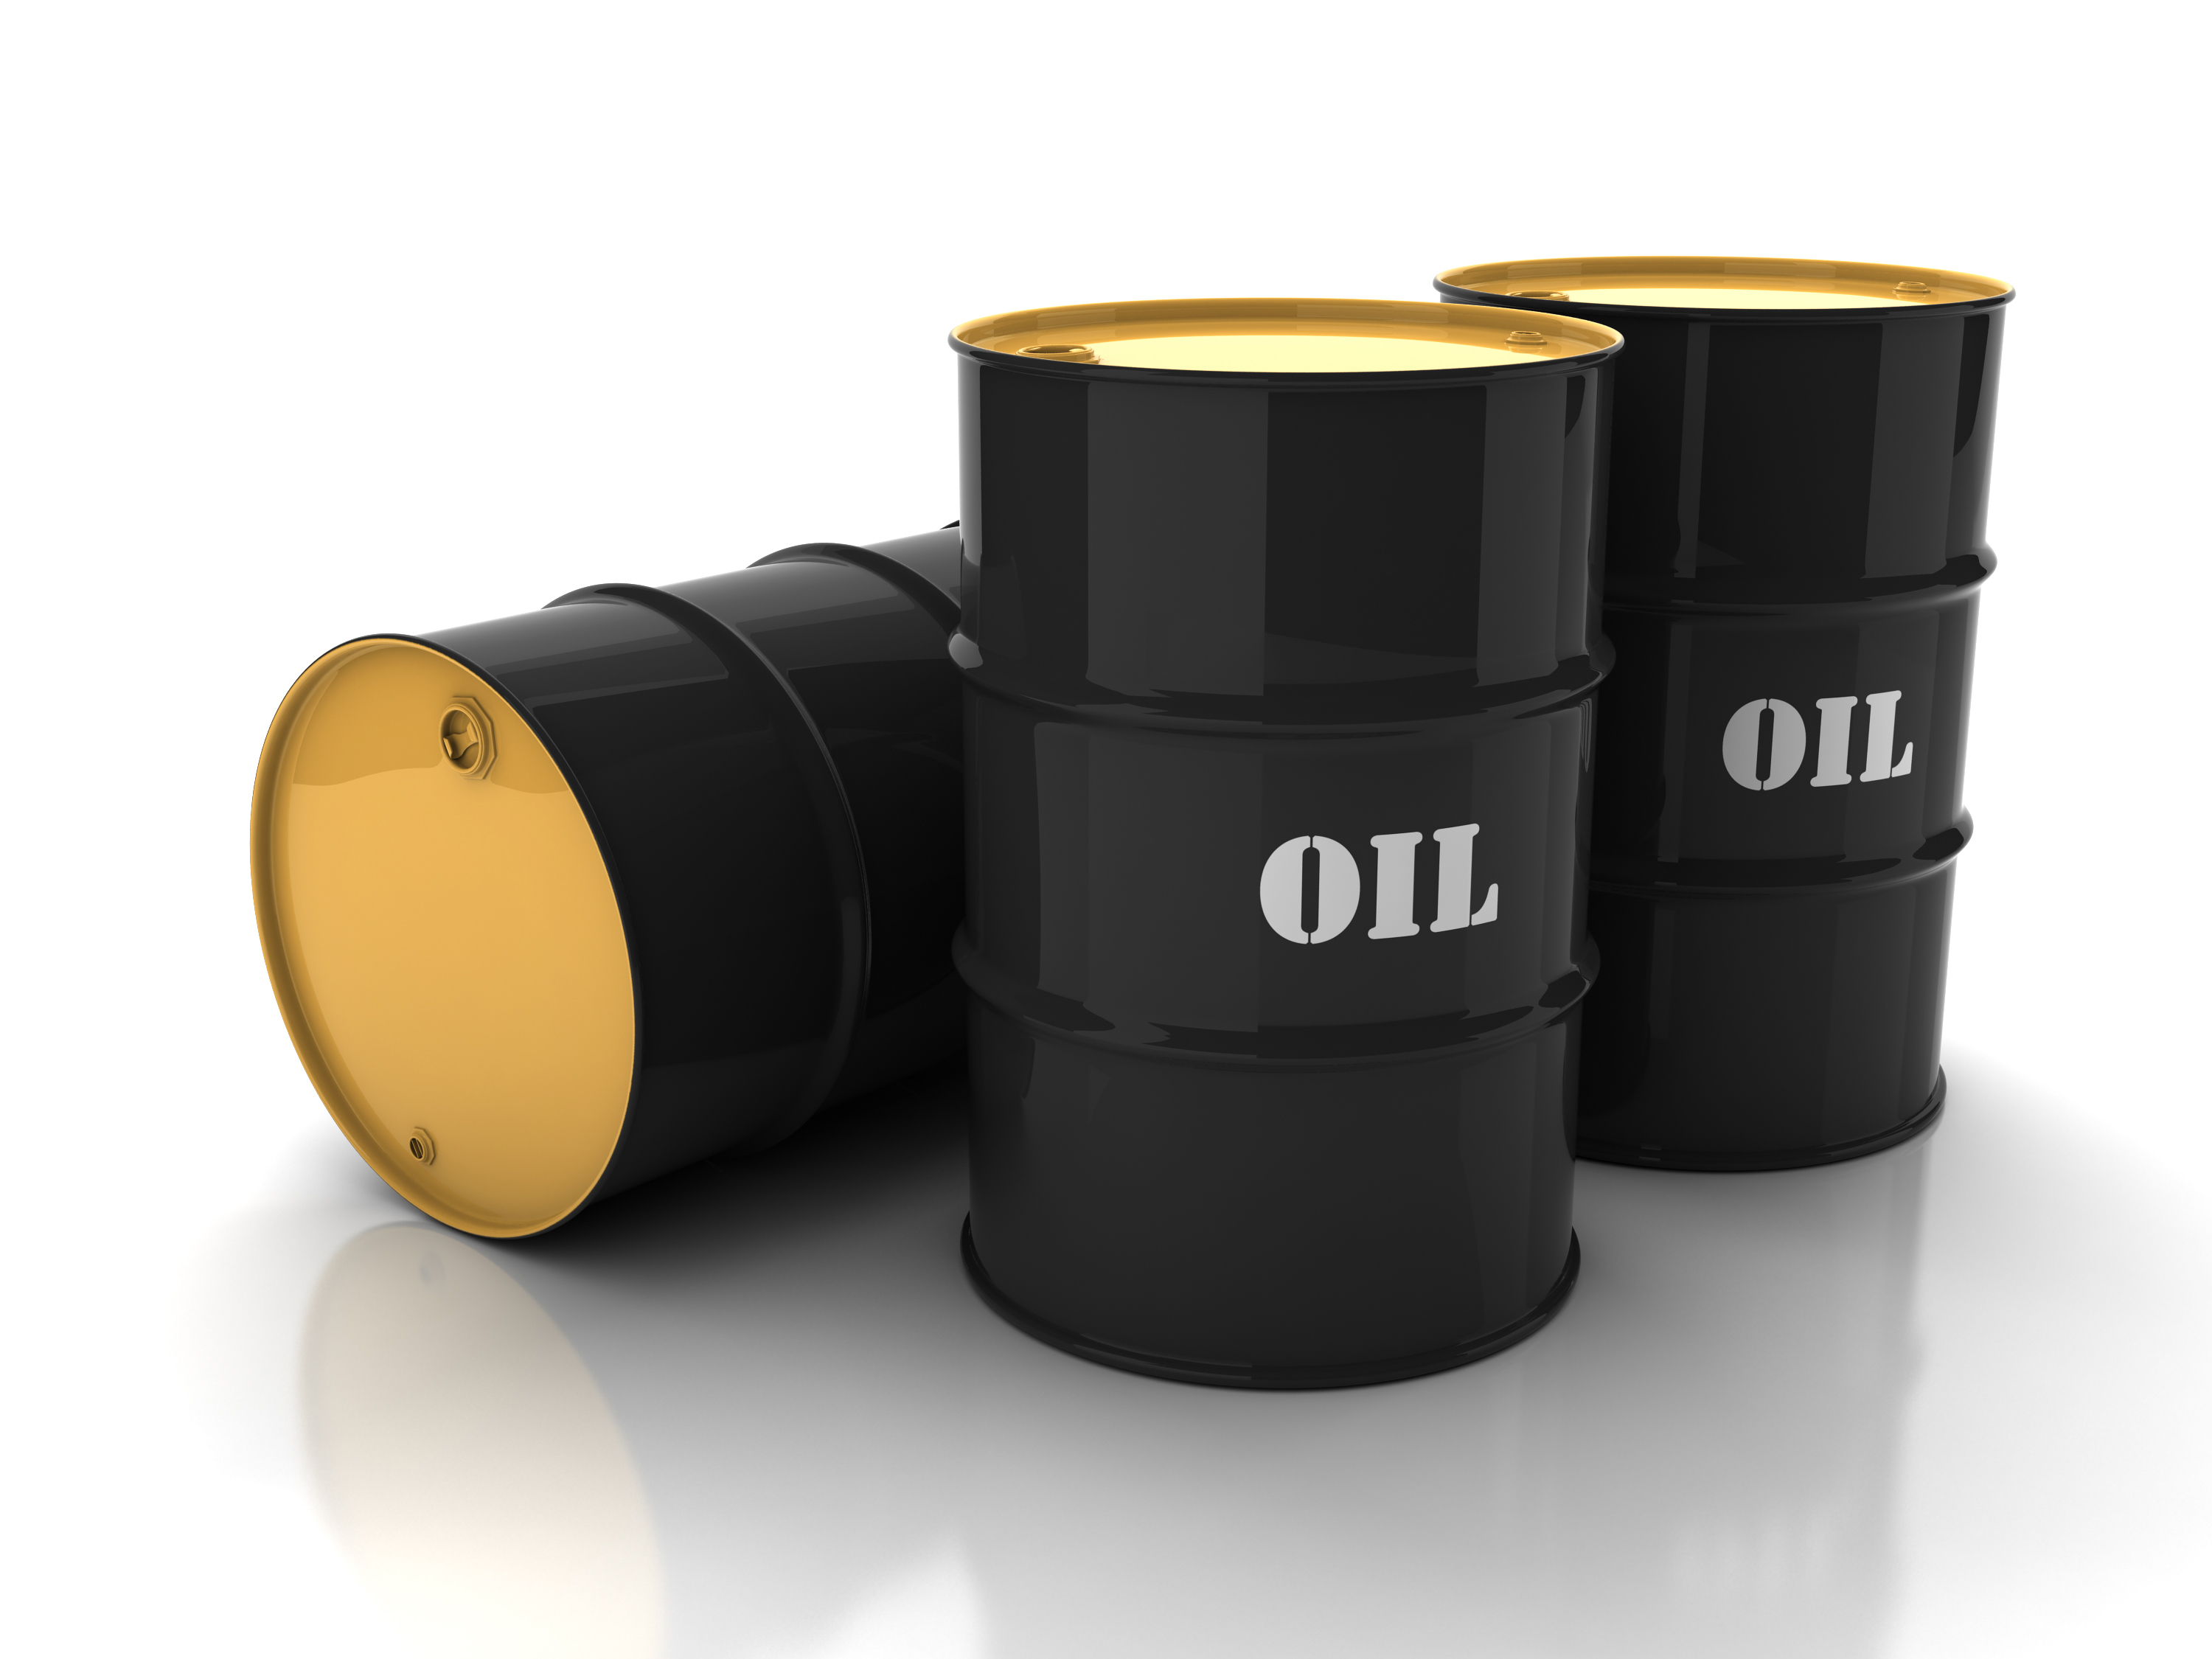 Black-oil-barrels-with-mark-on-white-background